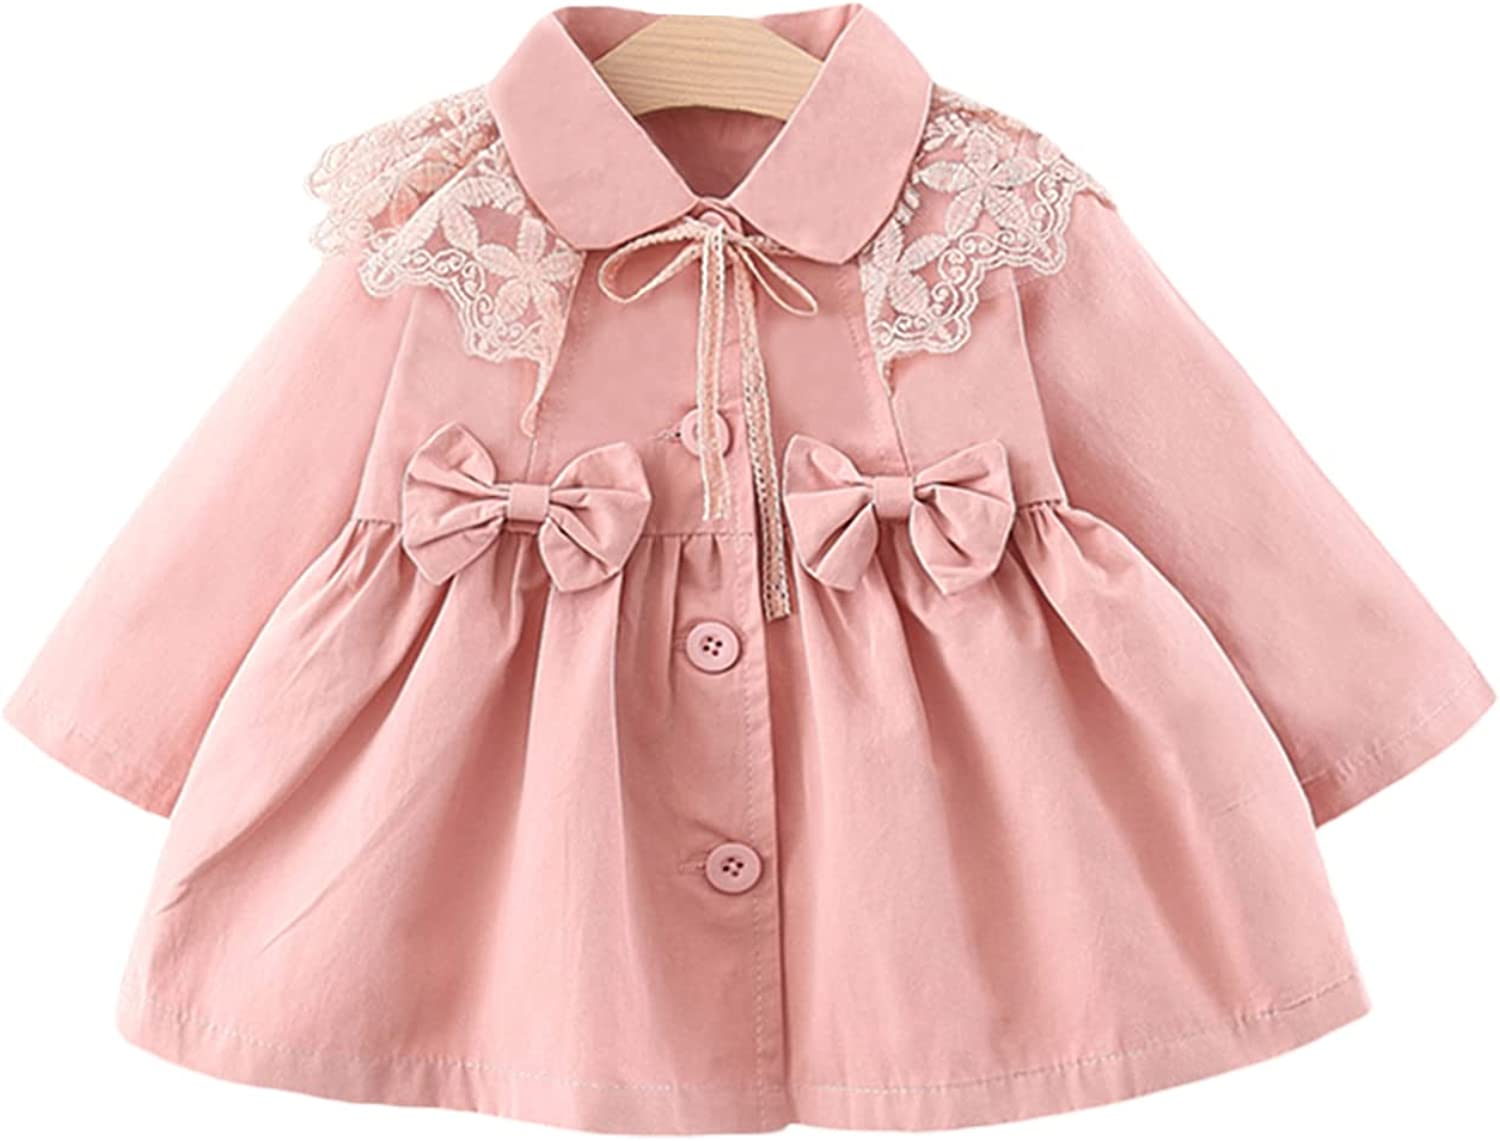 Toddler Girls Button Large special price !! Down Jacket Casual Sleeve Front Max 86% OFF Bow L Long